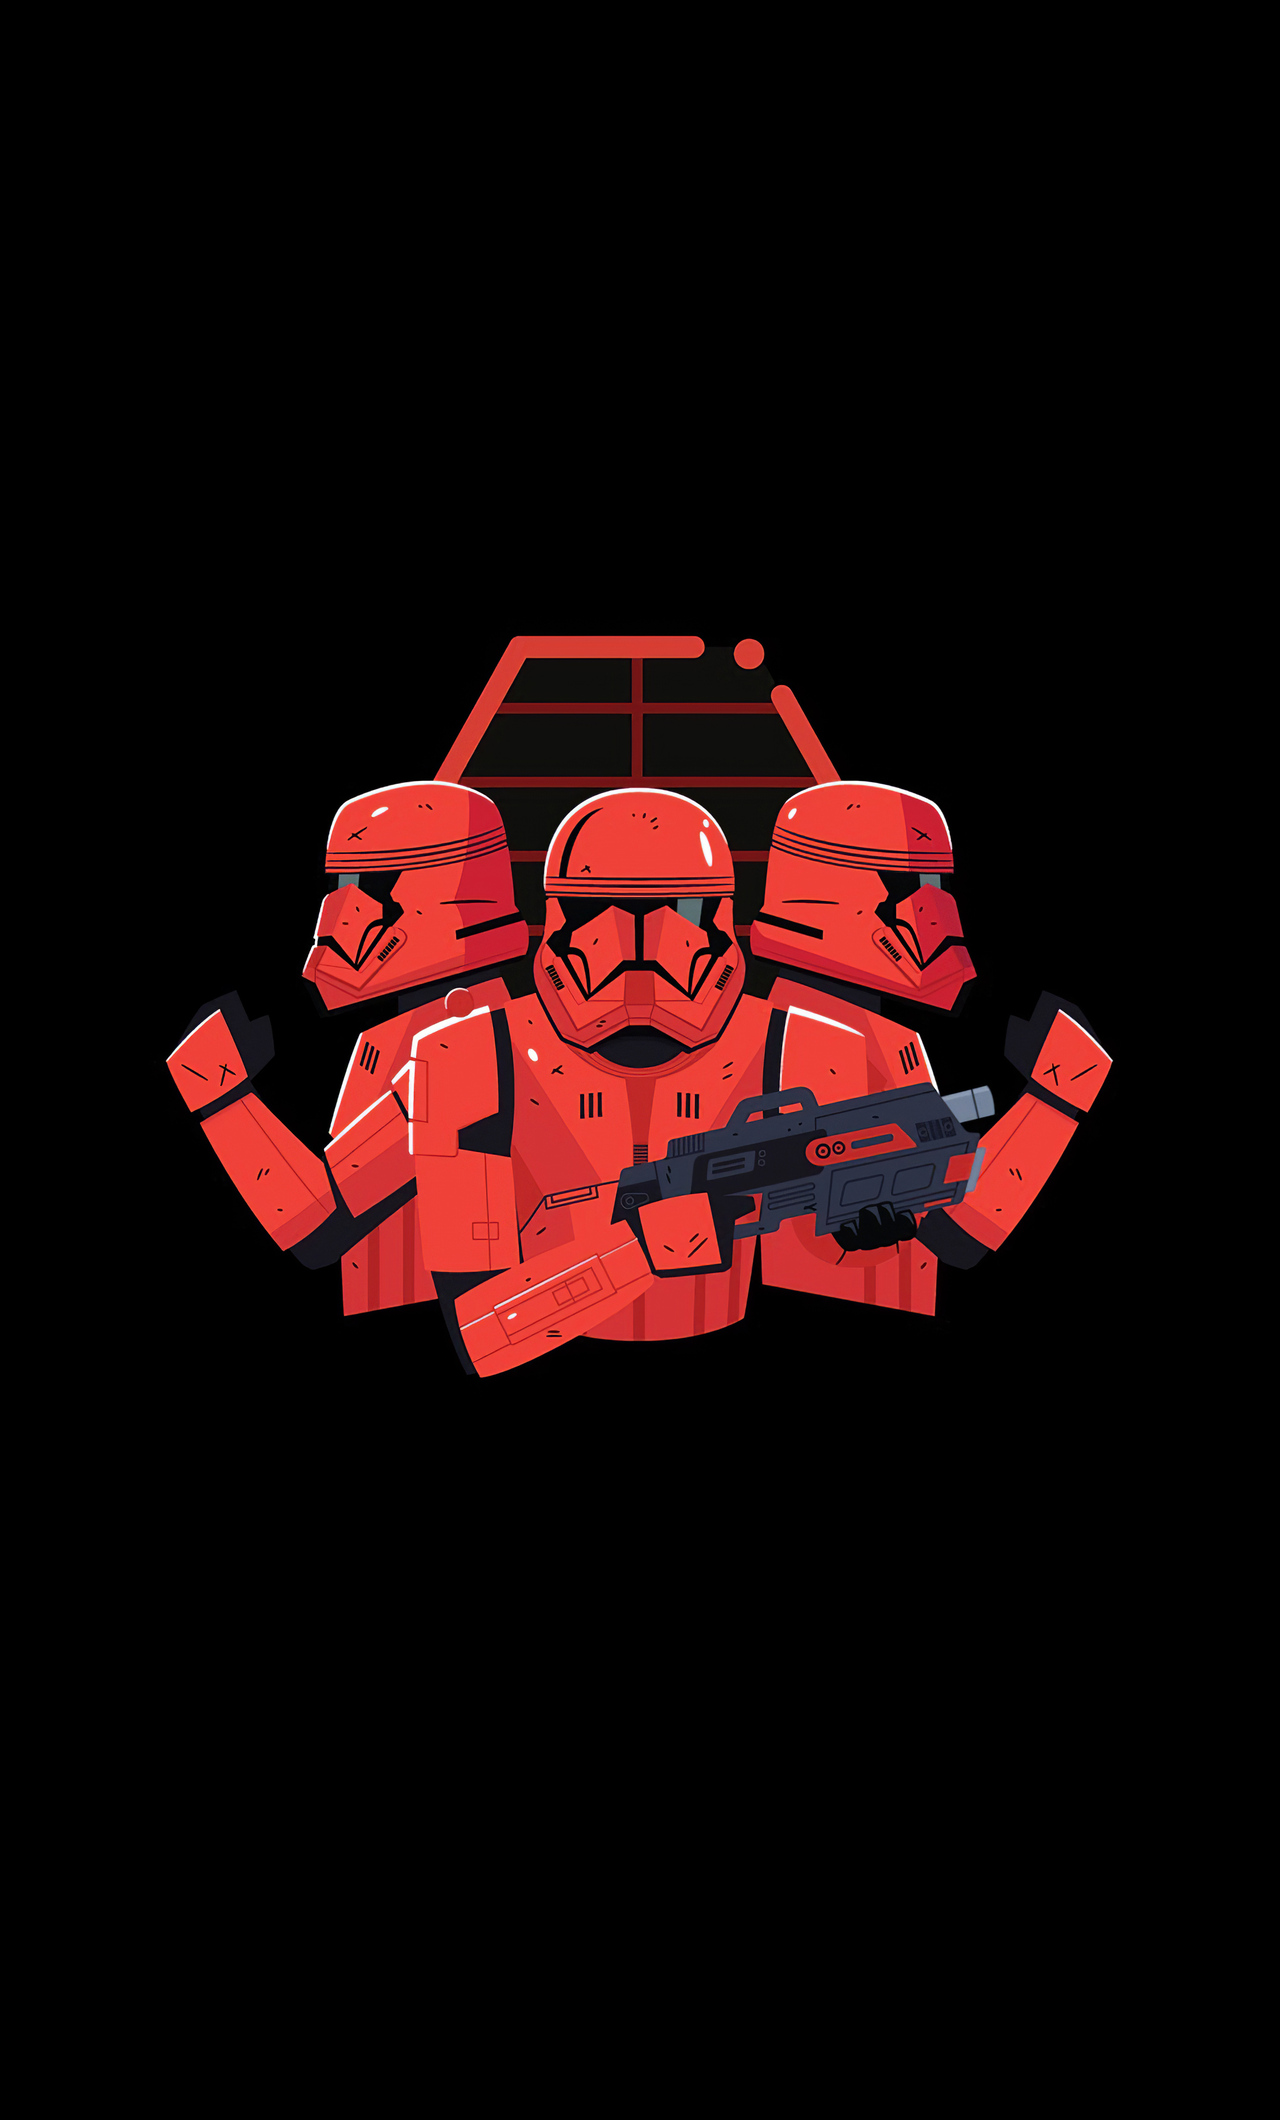 1280x2120 Star Wars Stormtrooper Minimal Art Iphone 6 Hd 4k